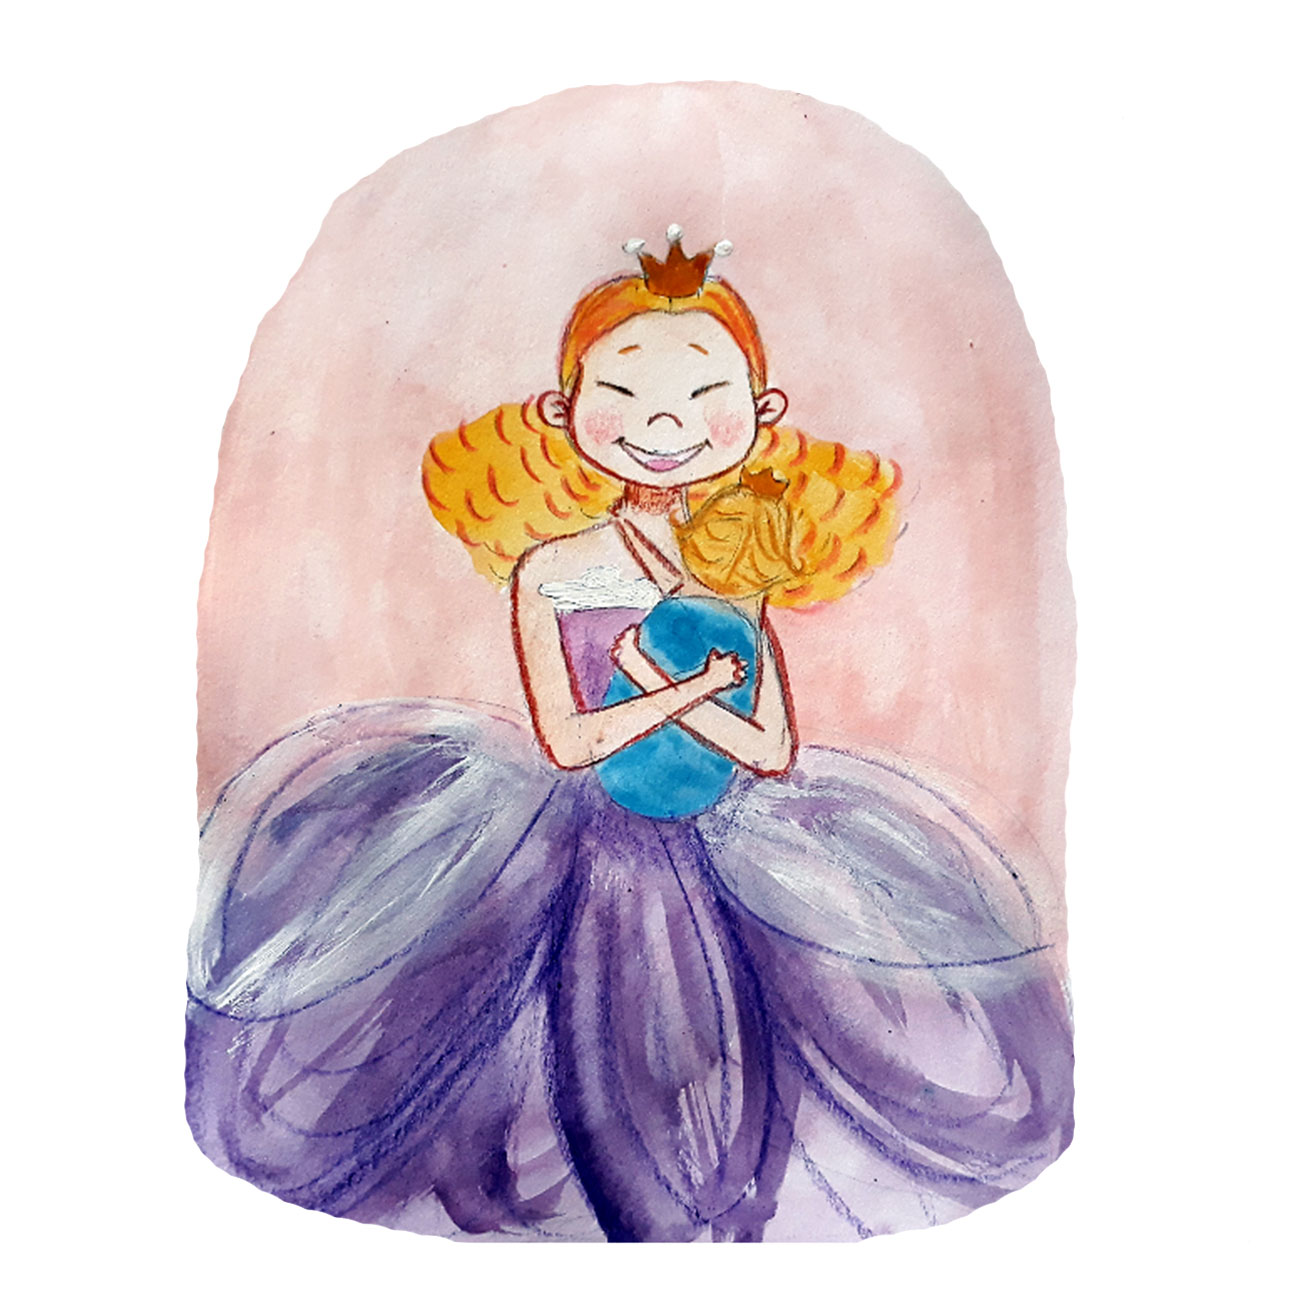 Princess stories for kids Baby Brother Surprise illustration 27